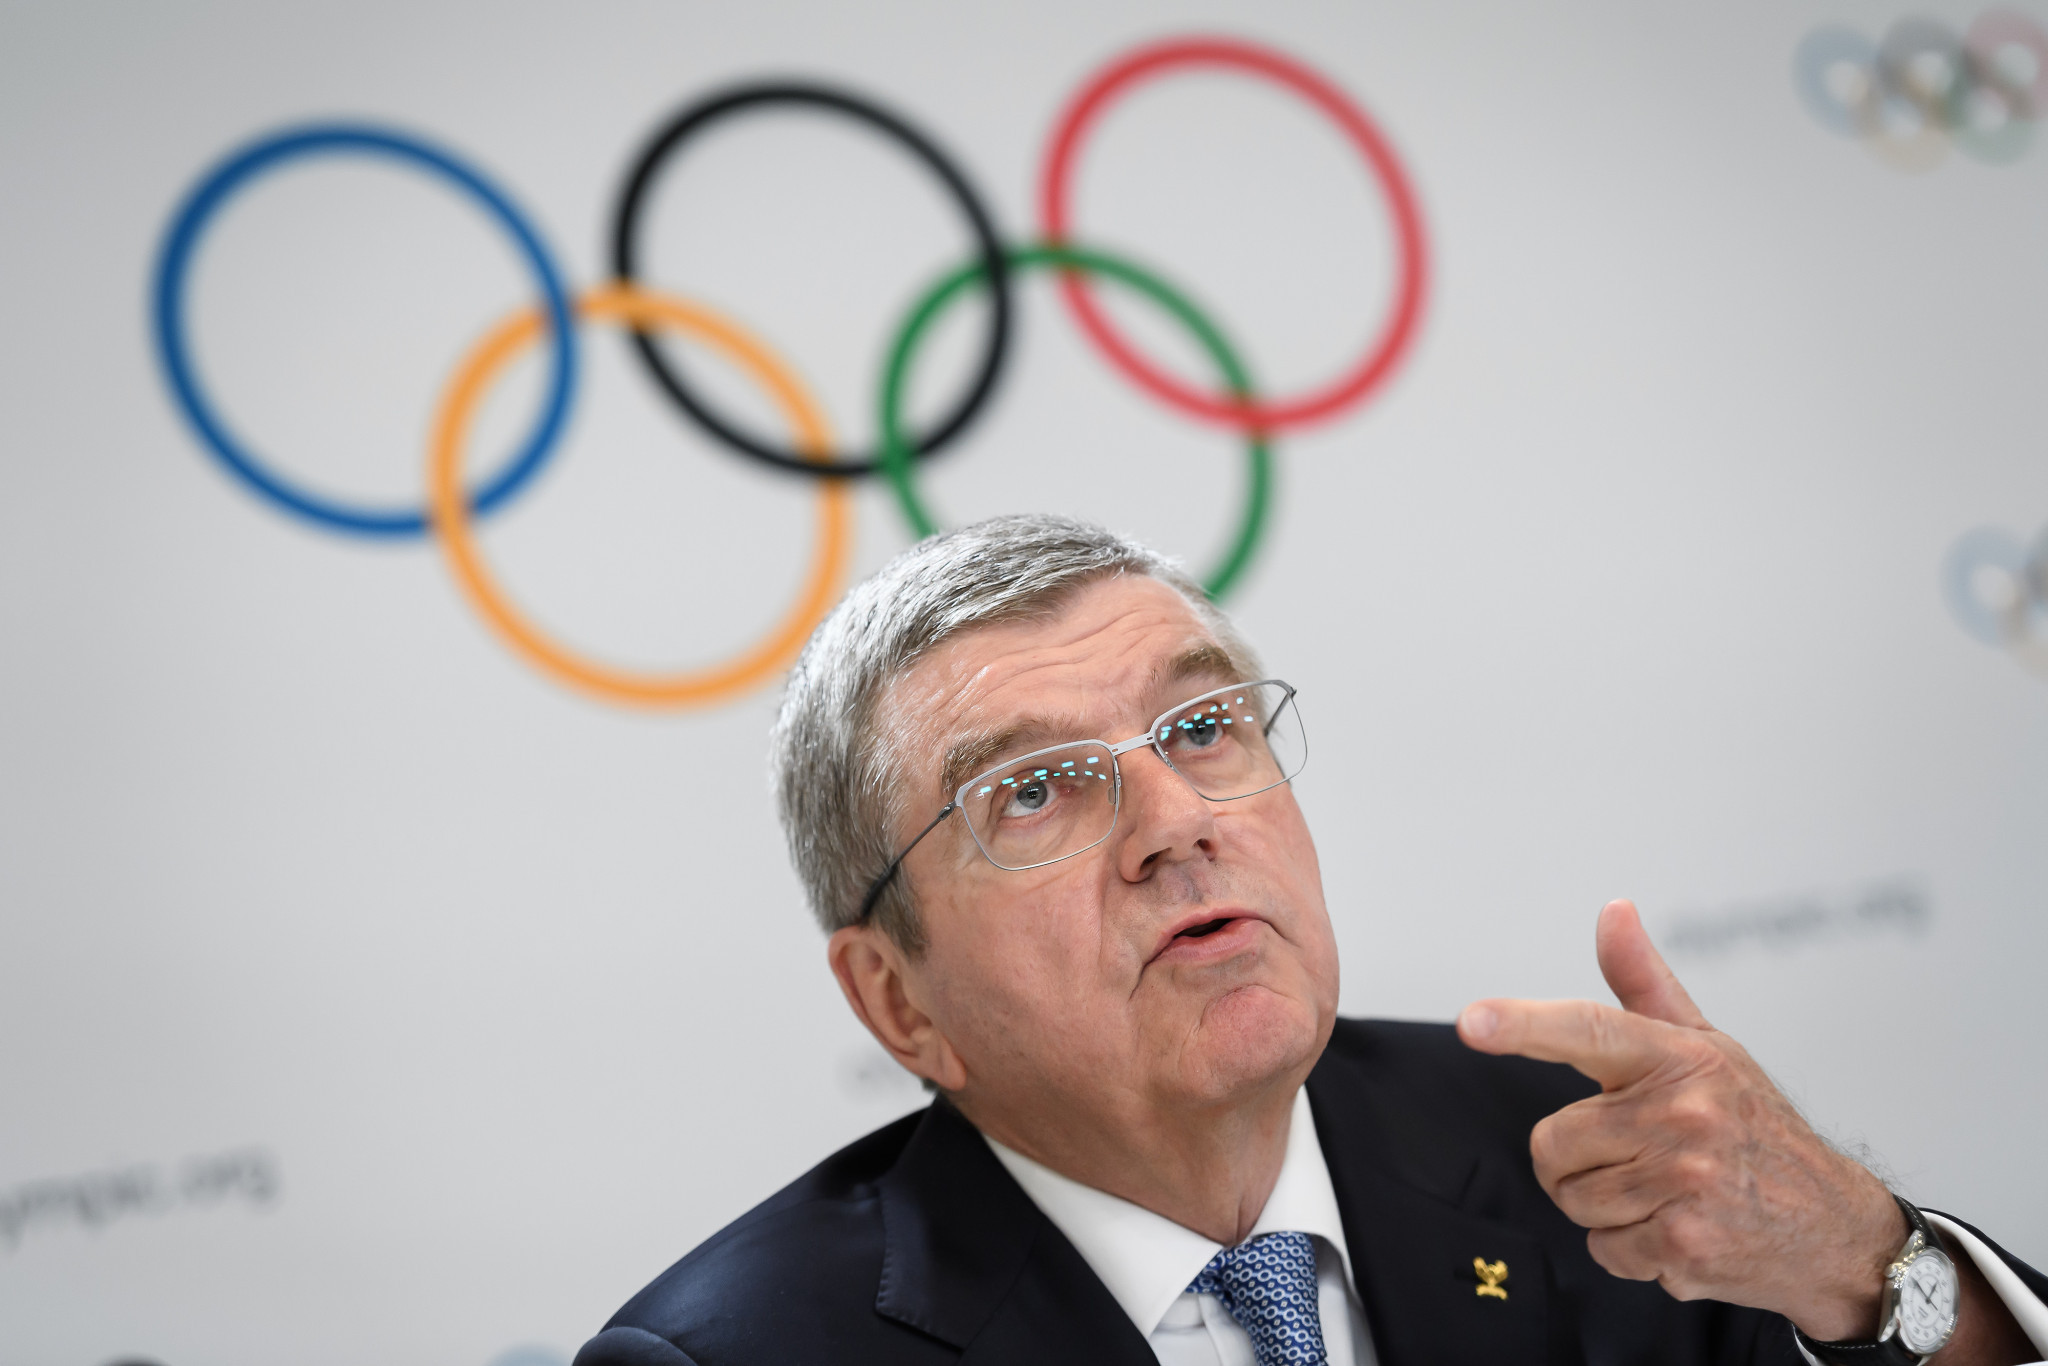 IOC President Thomas Bach praised Sapporo's bid following the meeting today ©Getty Images